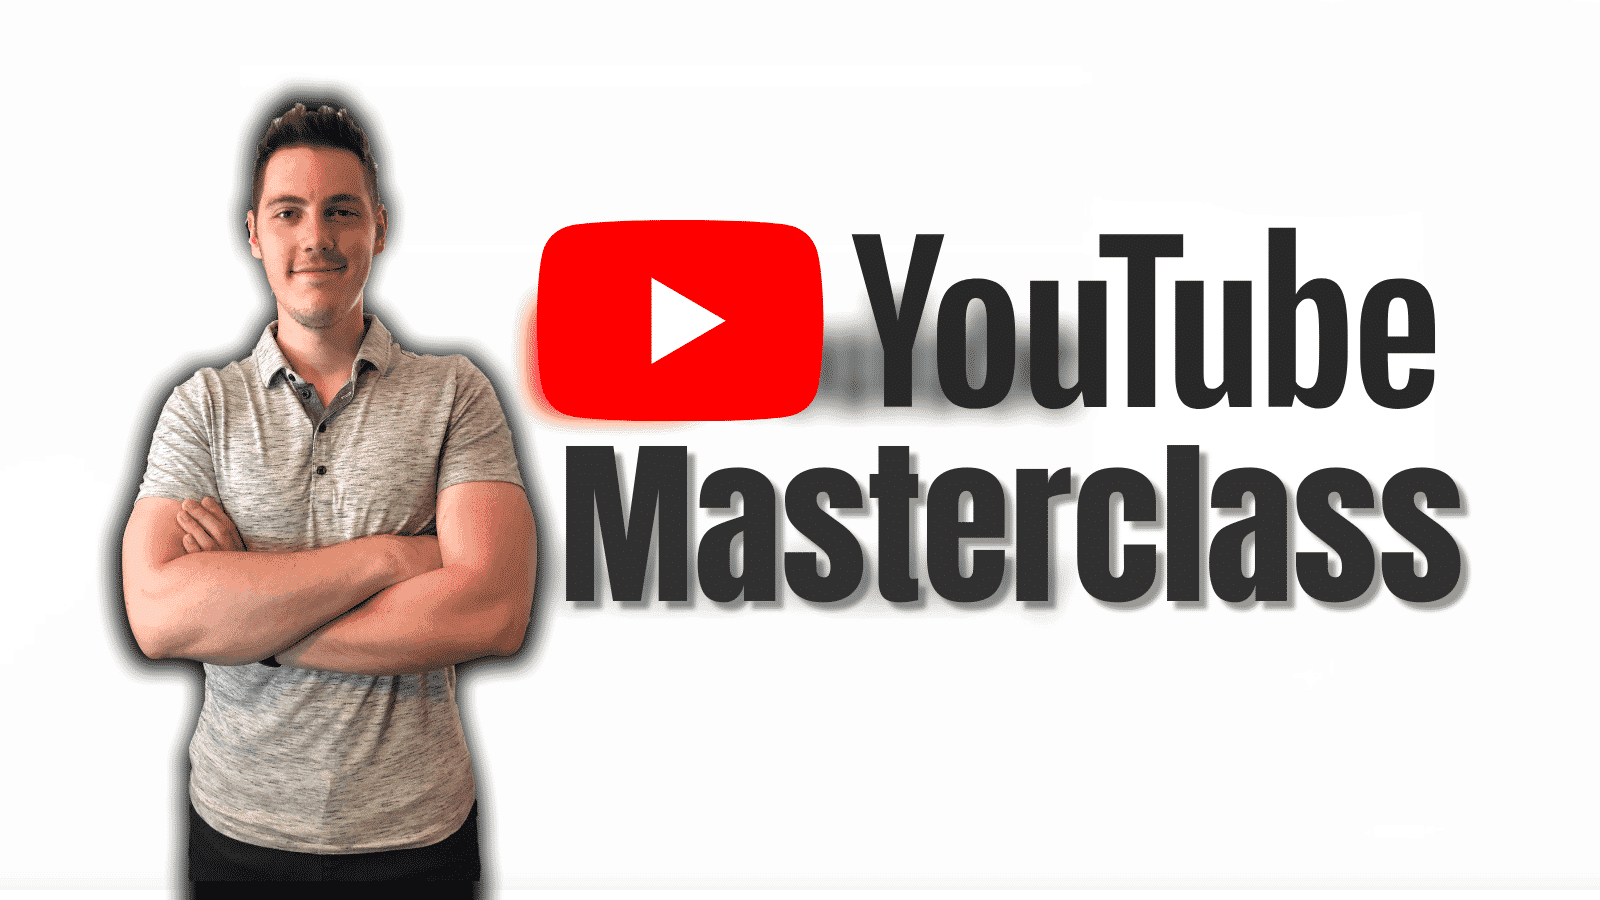 YouTube masterclass